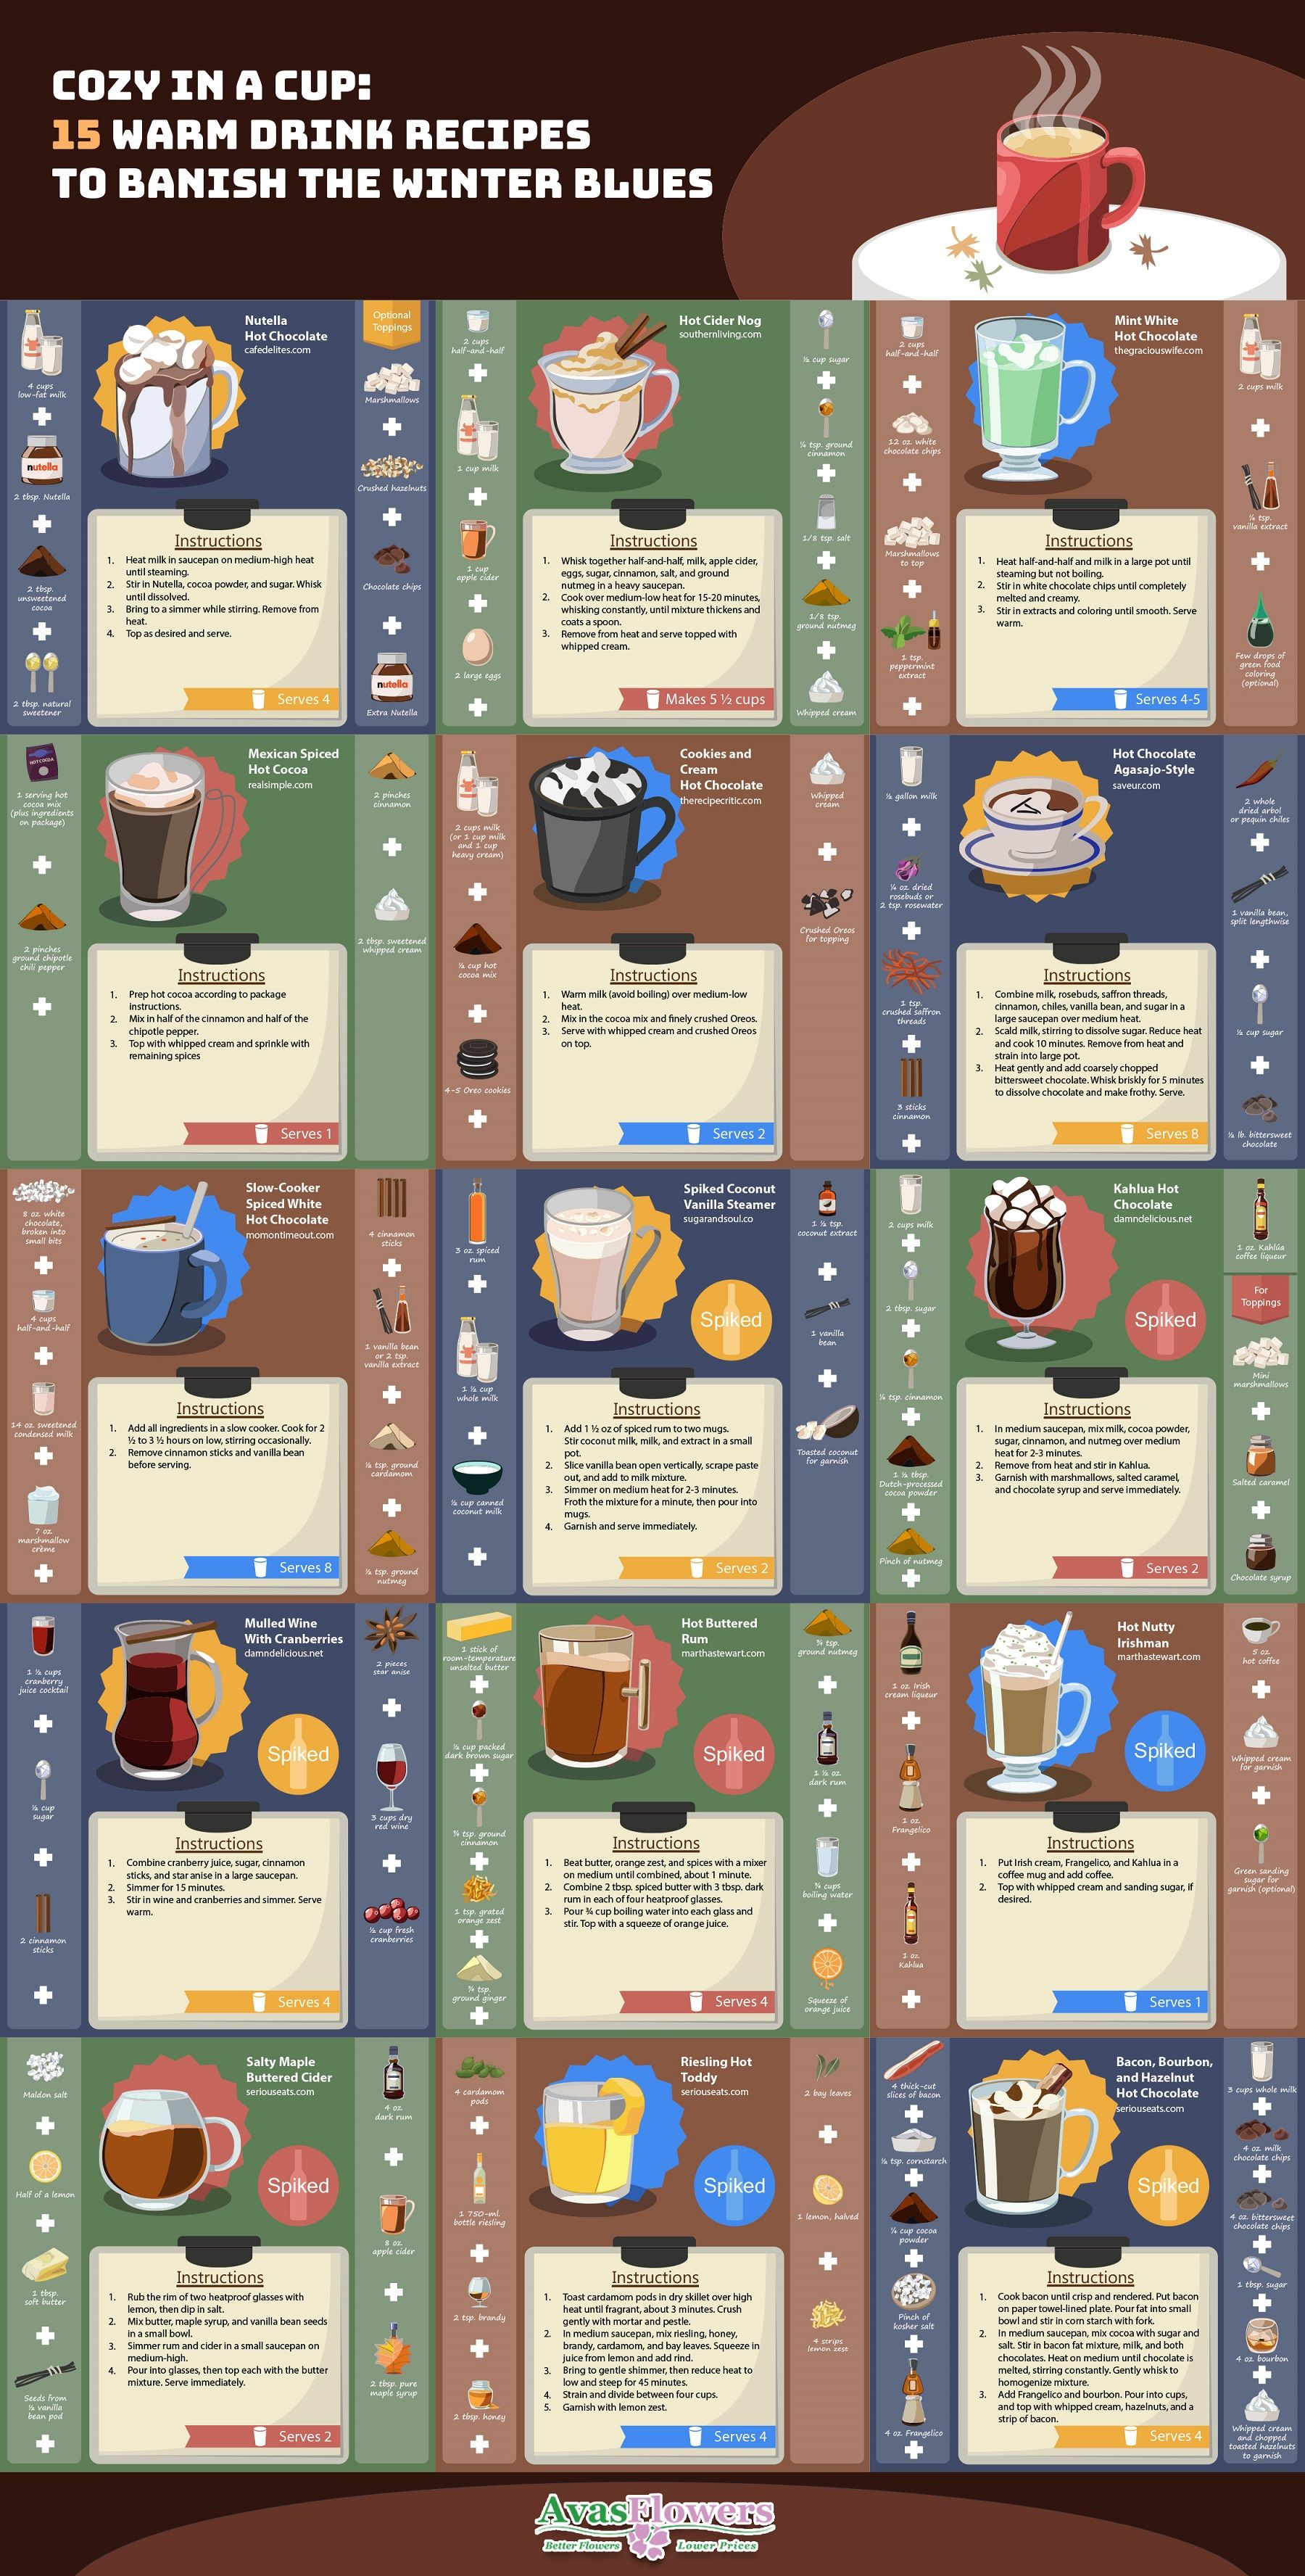 Cozy in a Cup: 15 Warm Drink Recipes to Banish The Winter Blues #Infographic